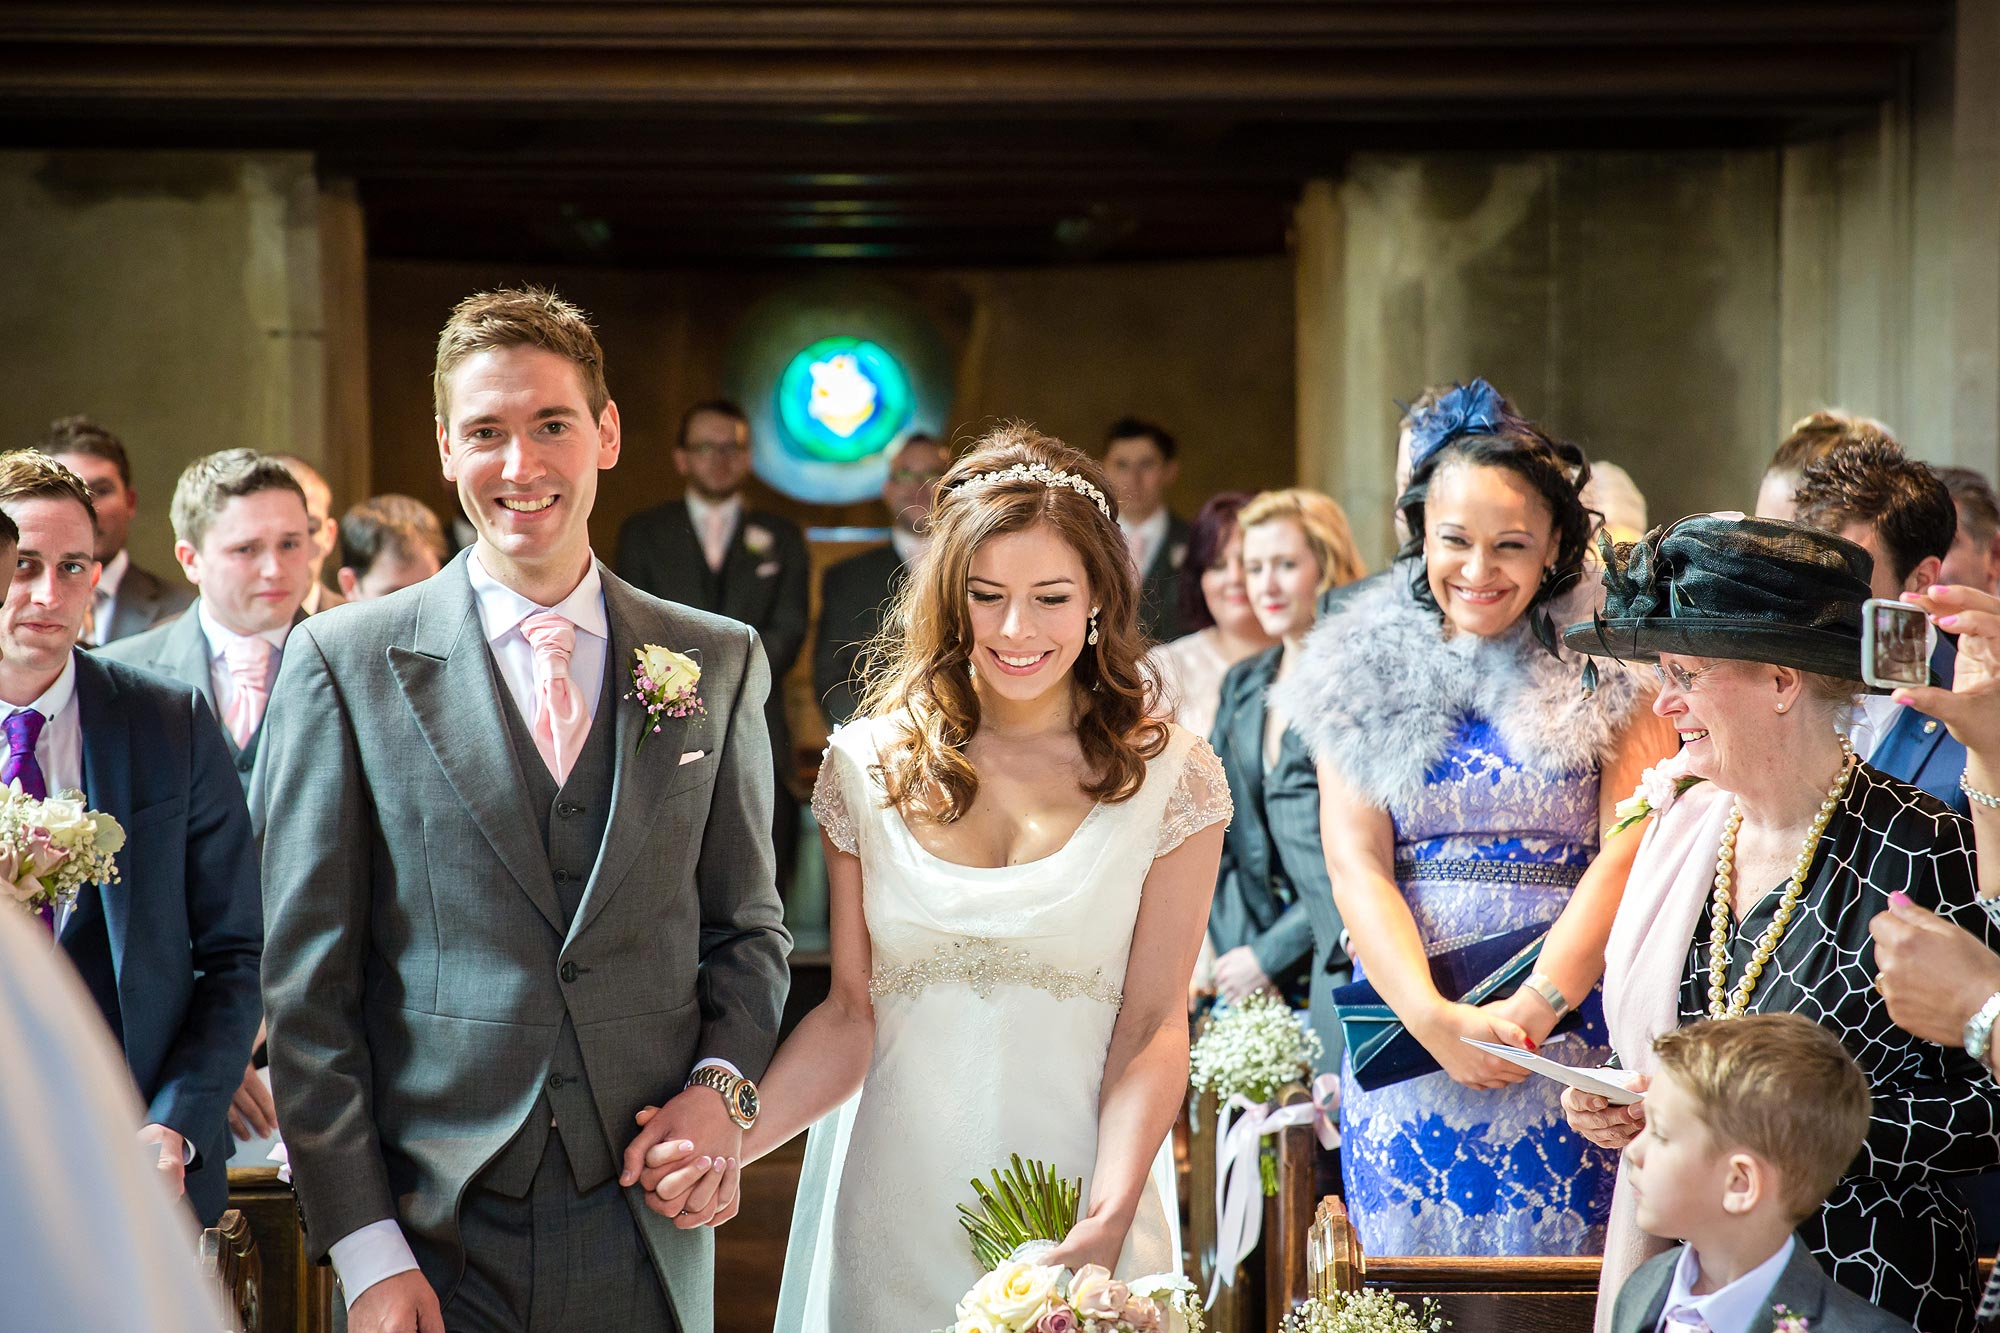 The couple enter Hengrave Hall church for a blessing